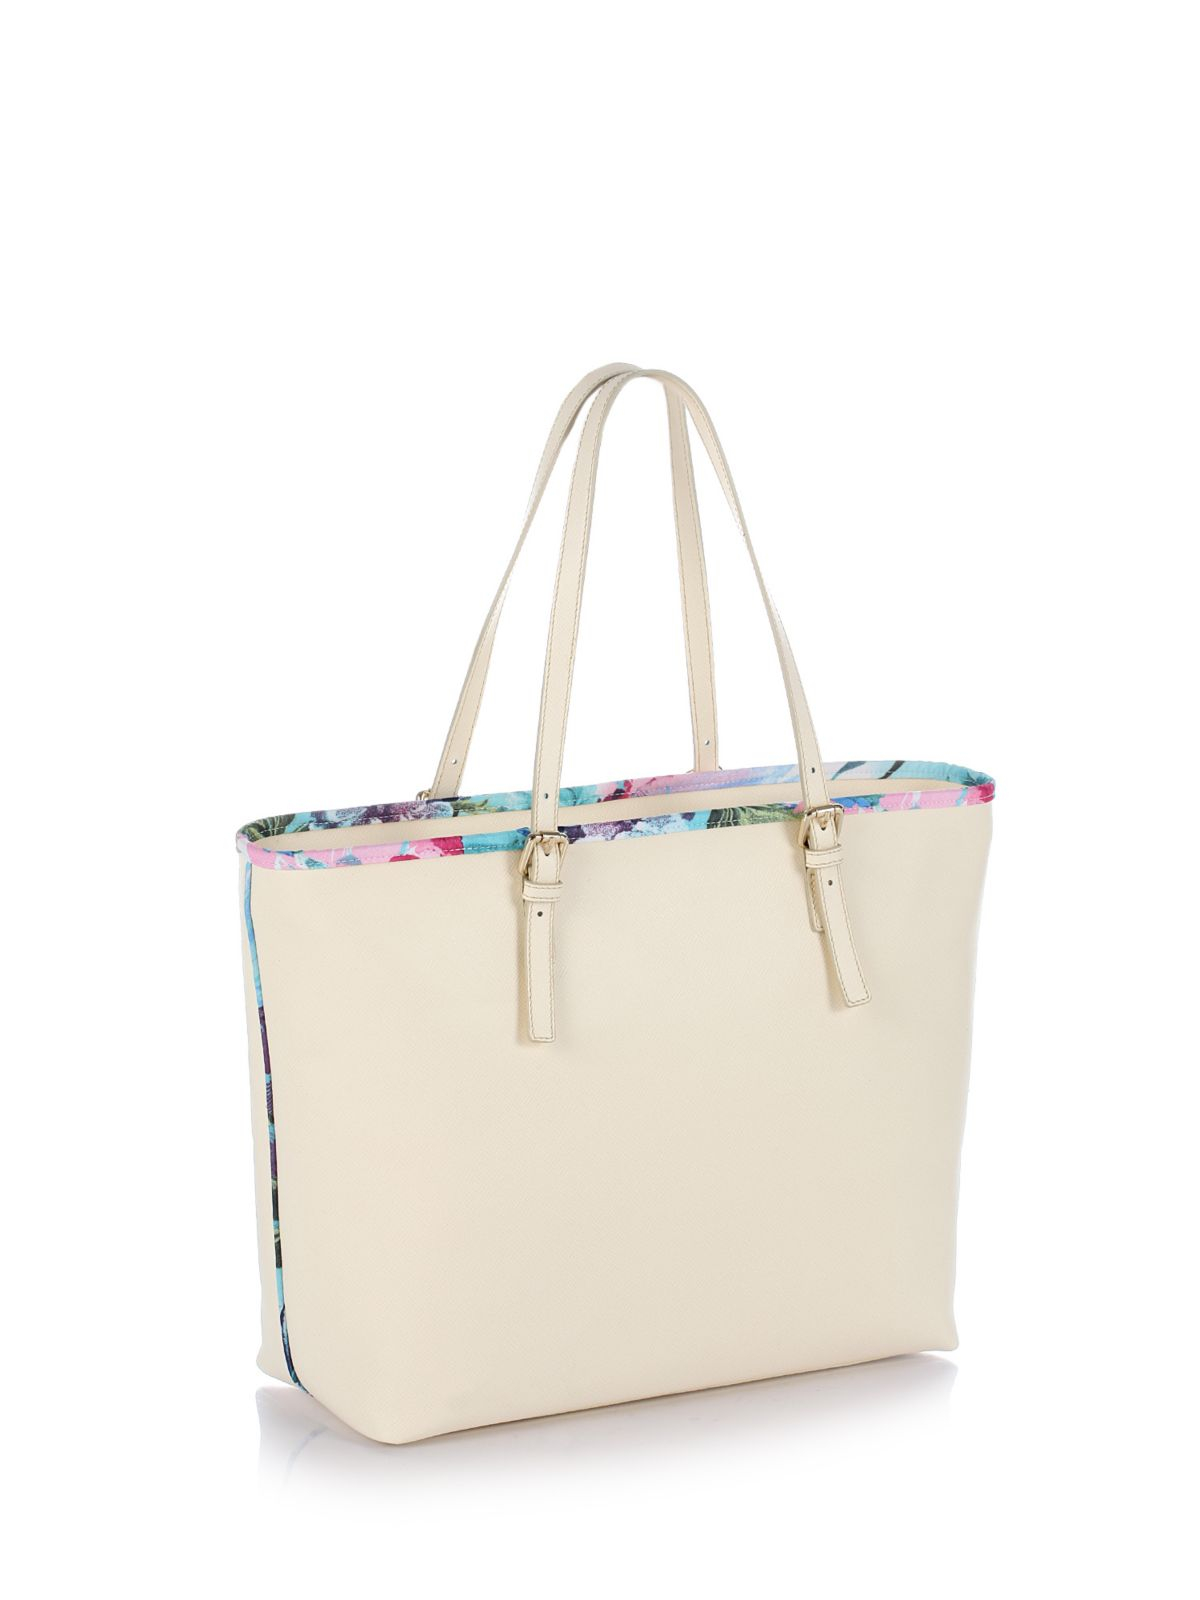 Guess Summer Tropical Shopper Bag in Natural